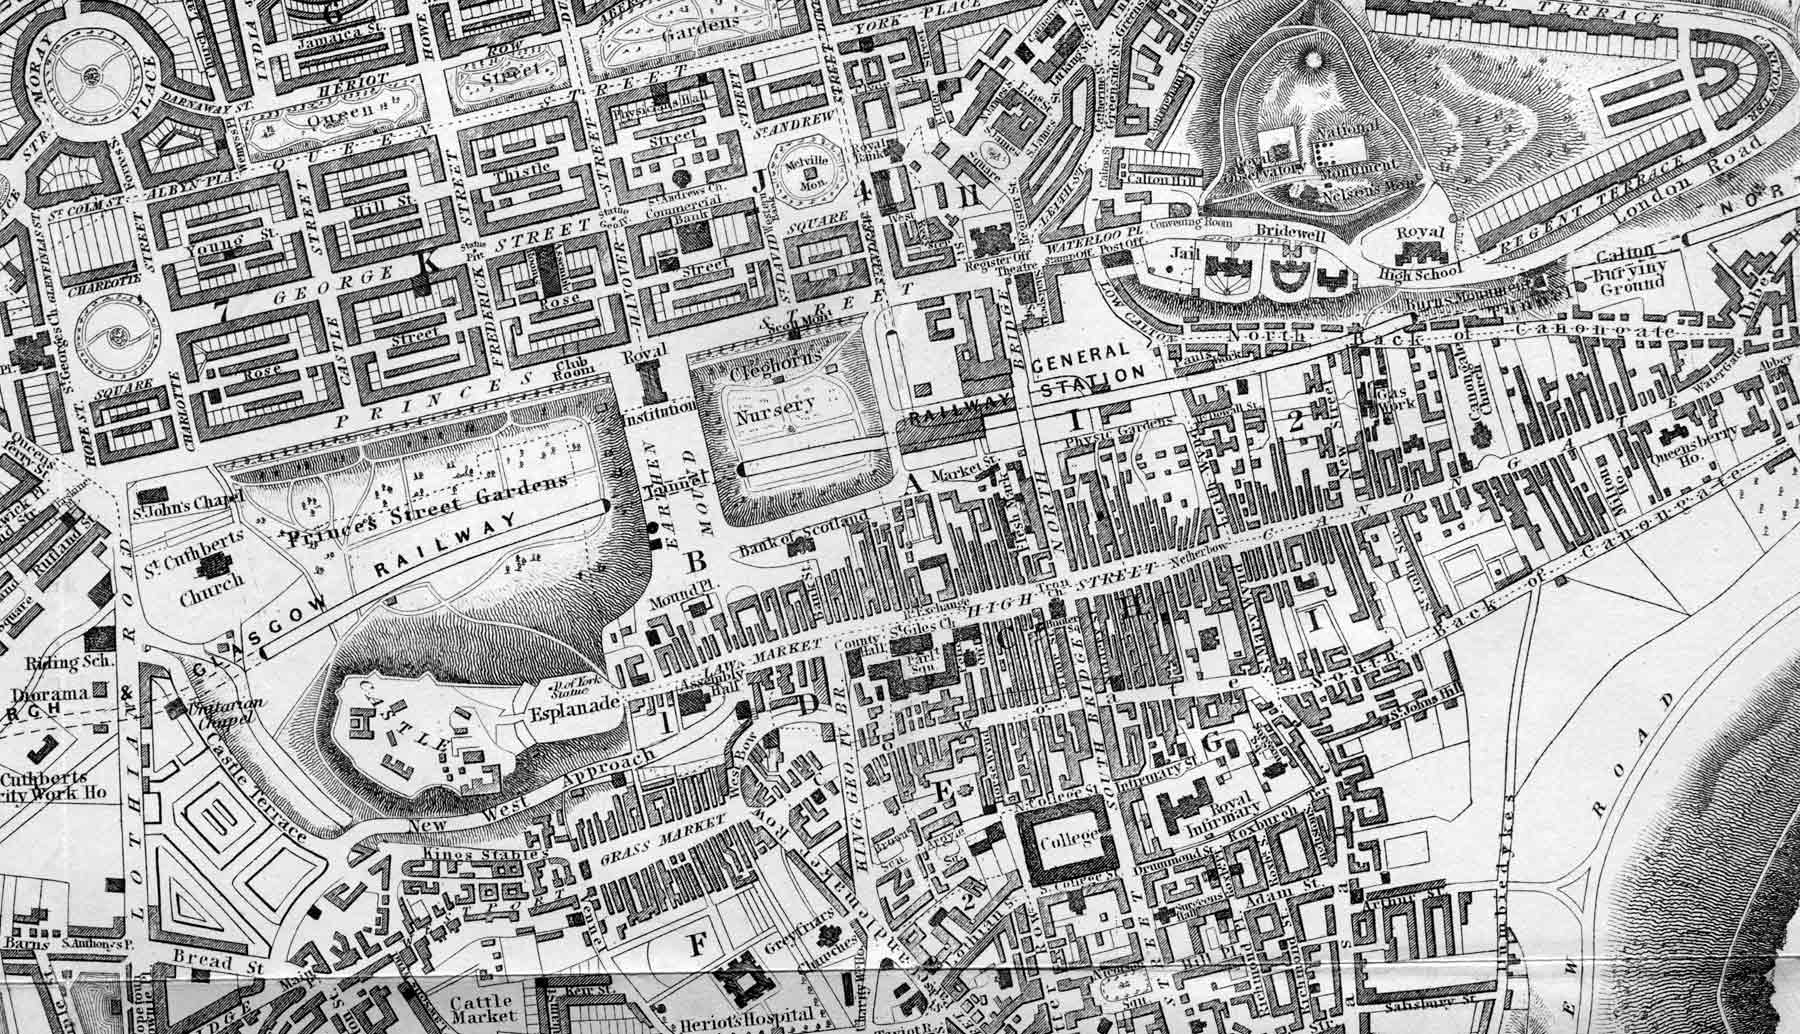 Edinburgh Map 1840 Enlarged